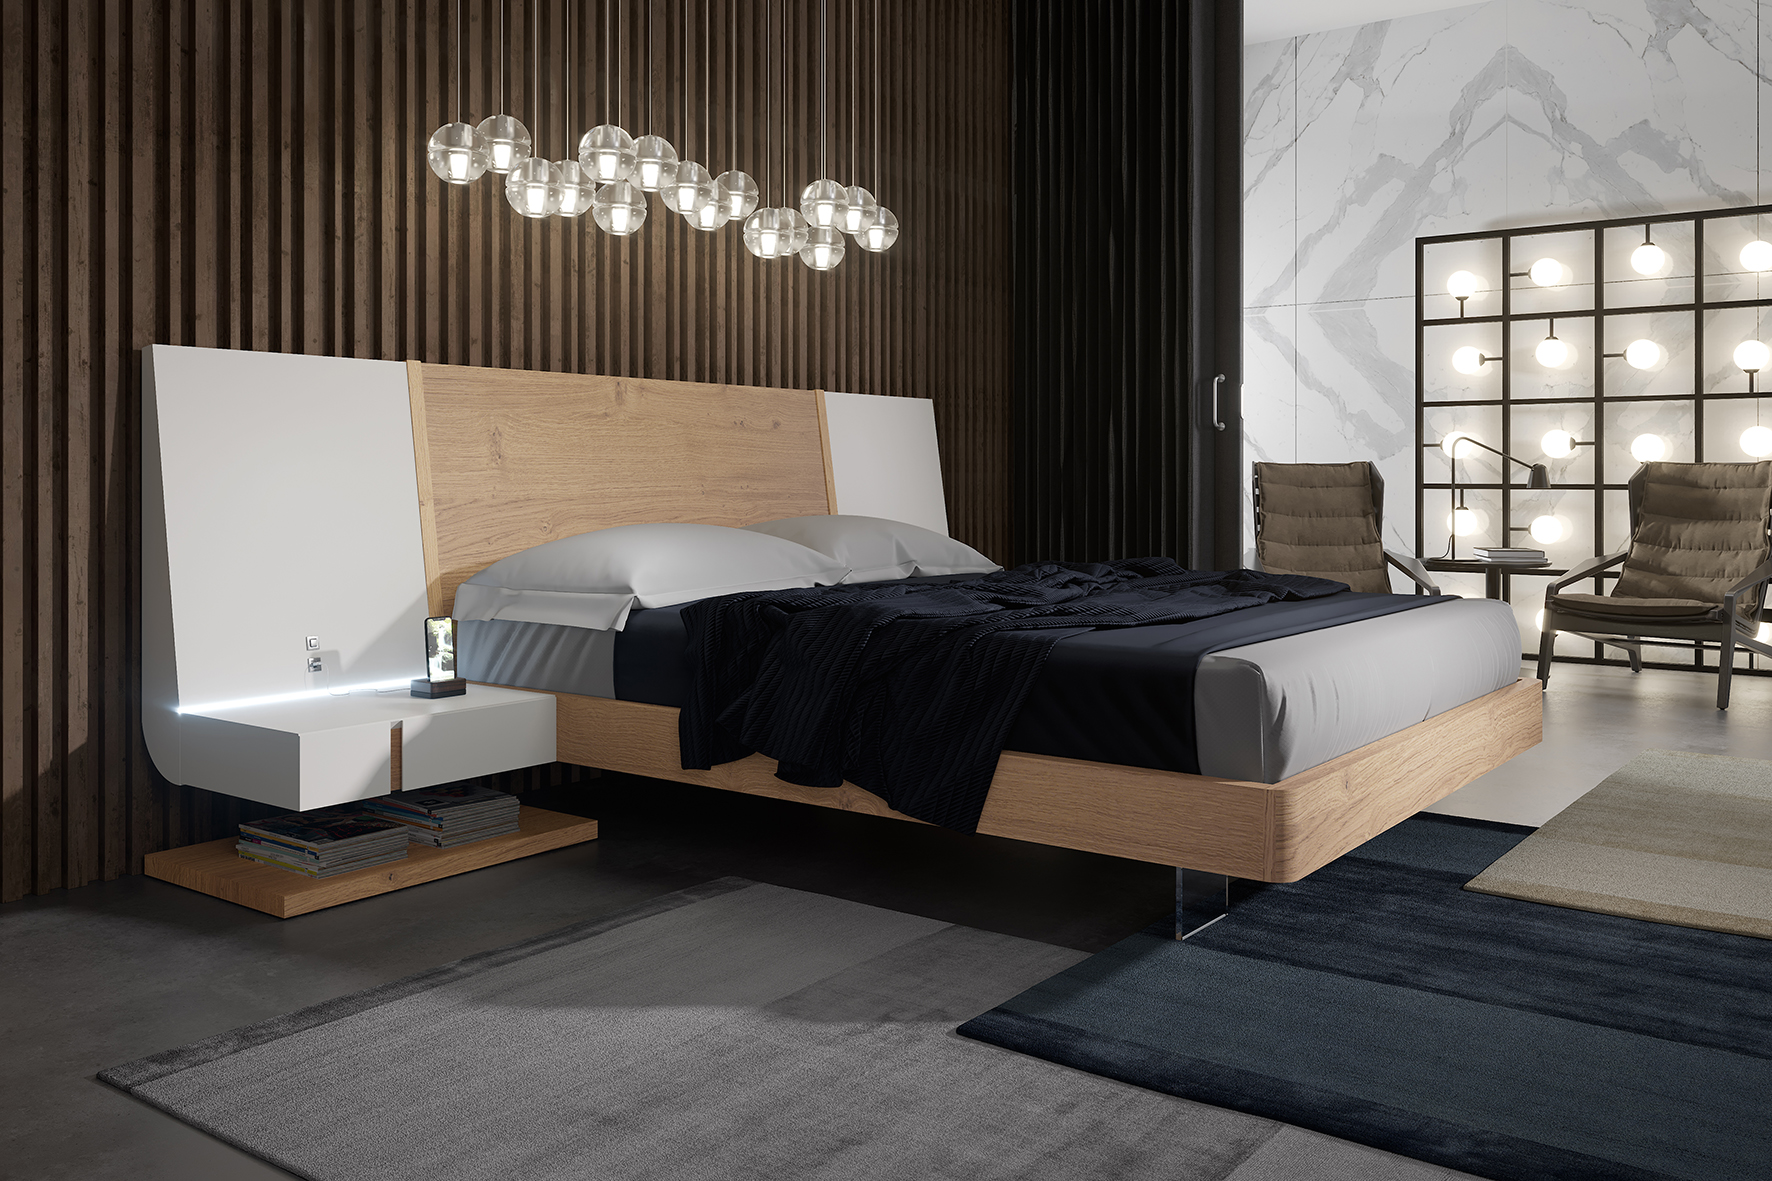 Picture of: Extravagant Wood High End Platform Bed With Drawers Los Angeles California Garcia Sabate Air Ym05